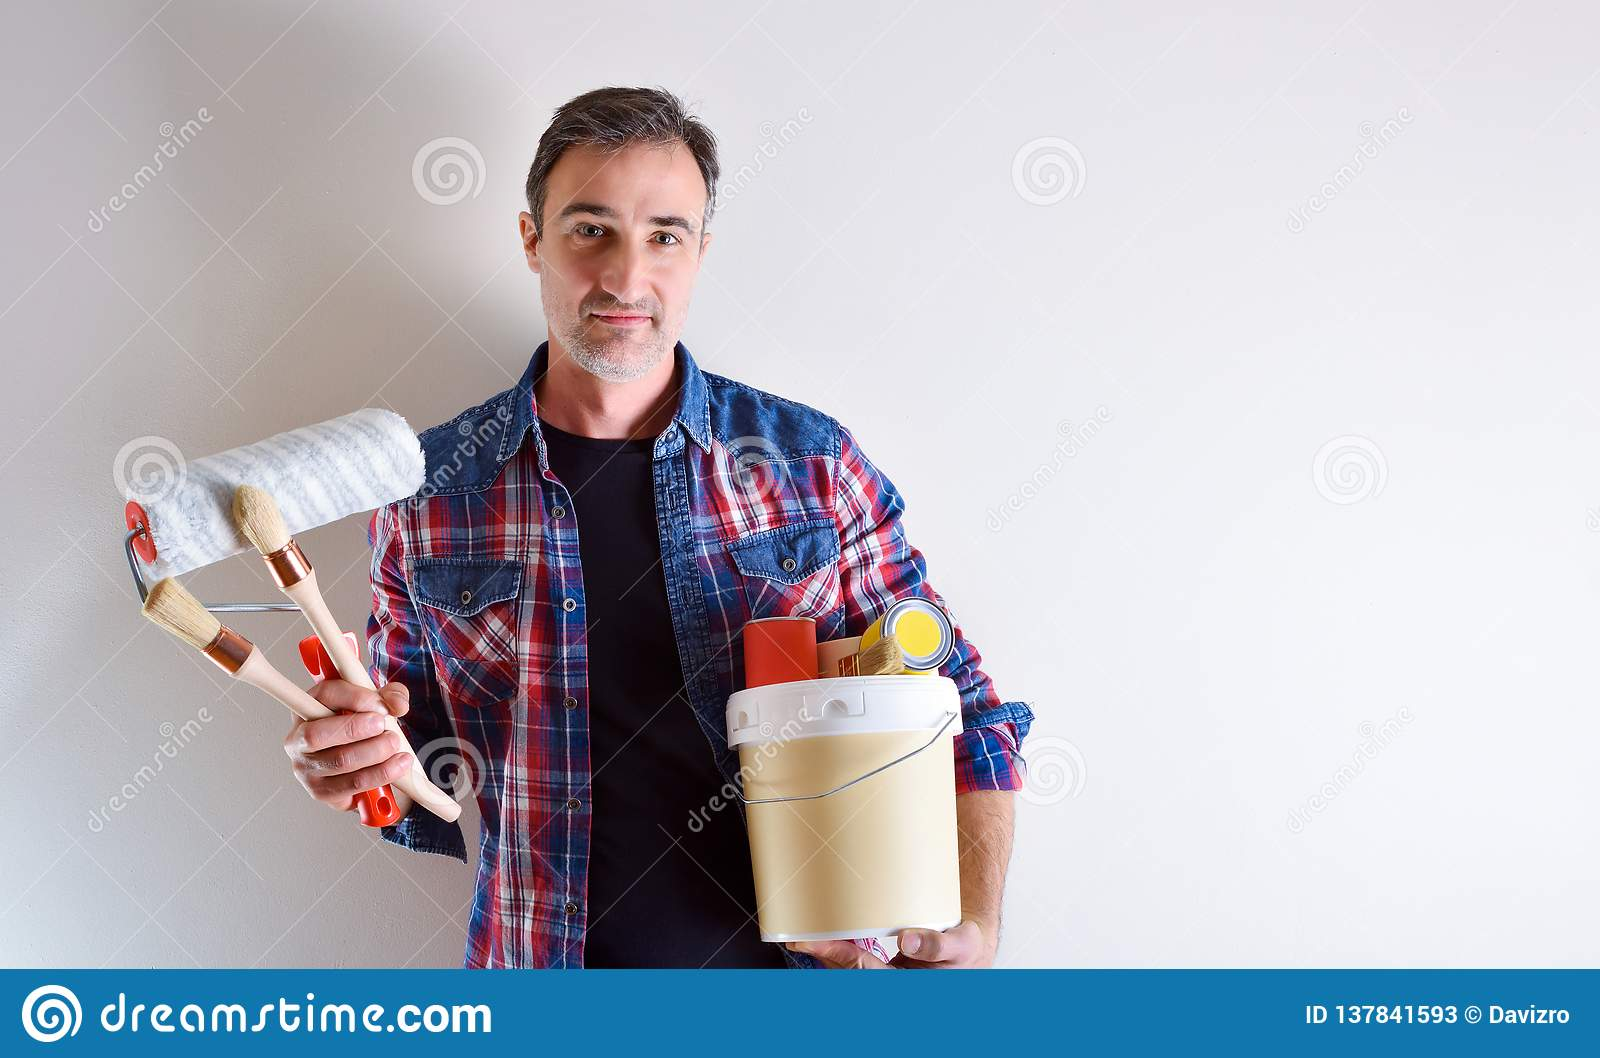 Man with paint tools on hands and white wall behind